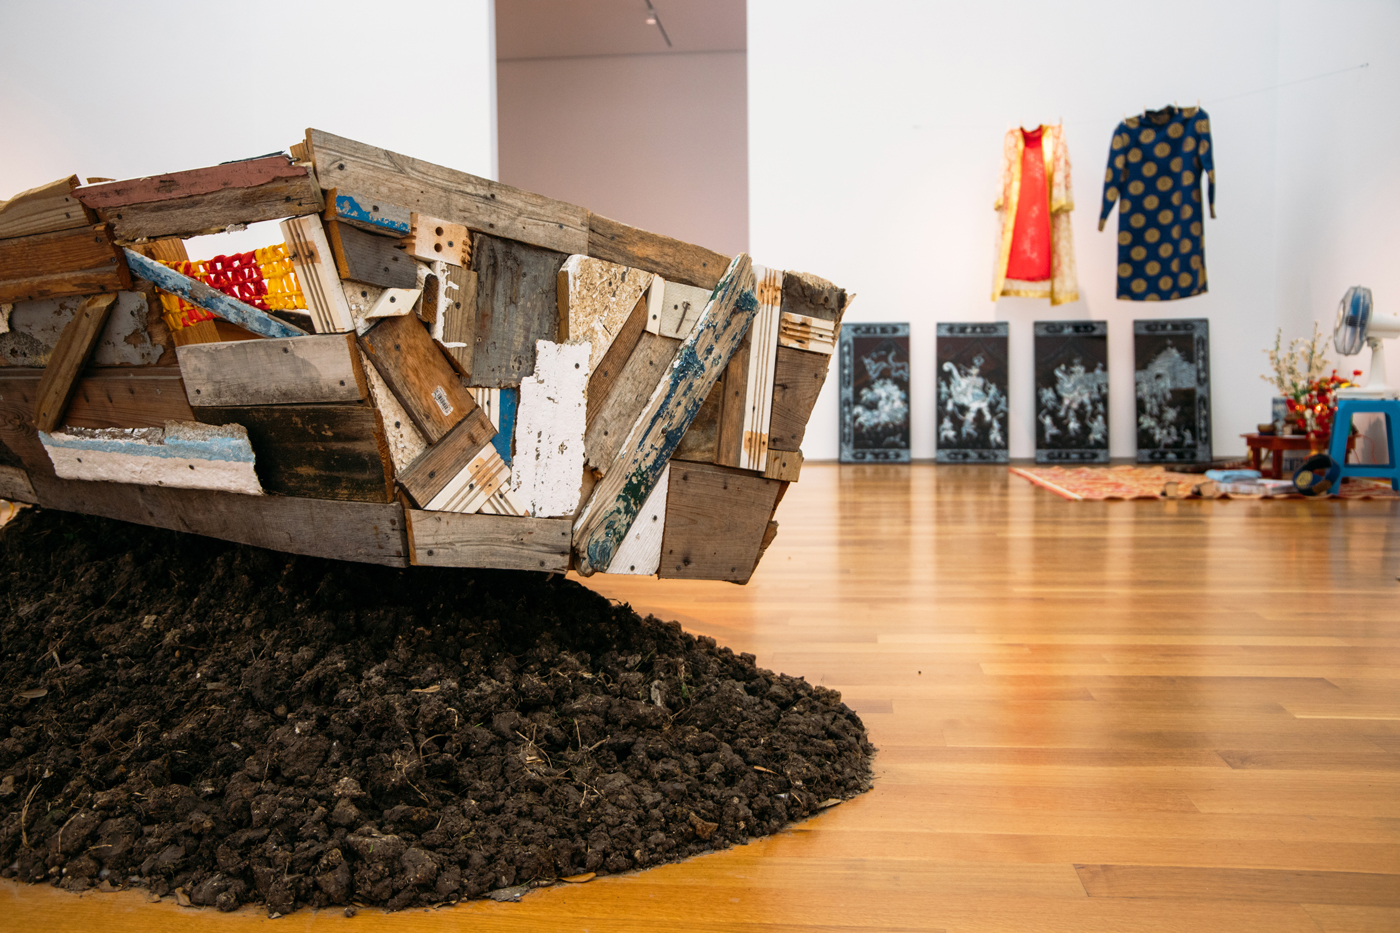 Image of an installation by Brandon Tho Harris containing a boat sculpture in the foreground and other sculptural objects in the background.